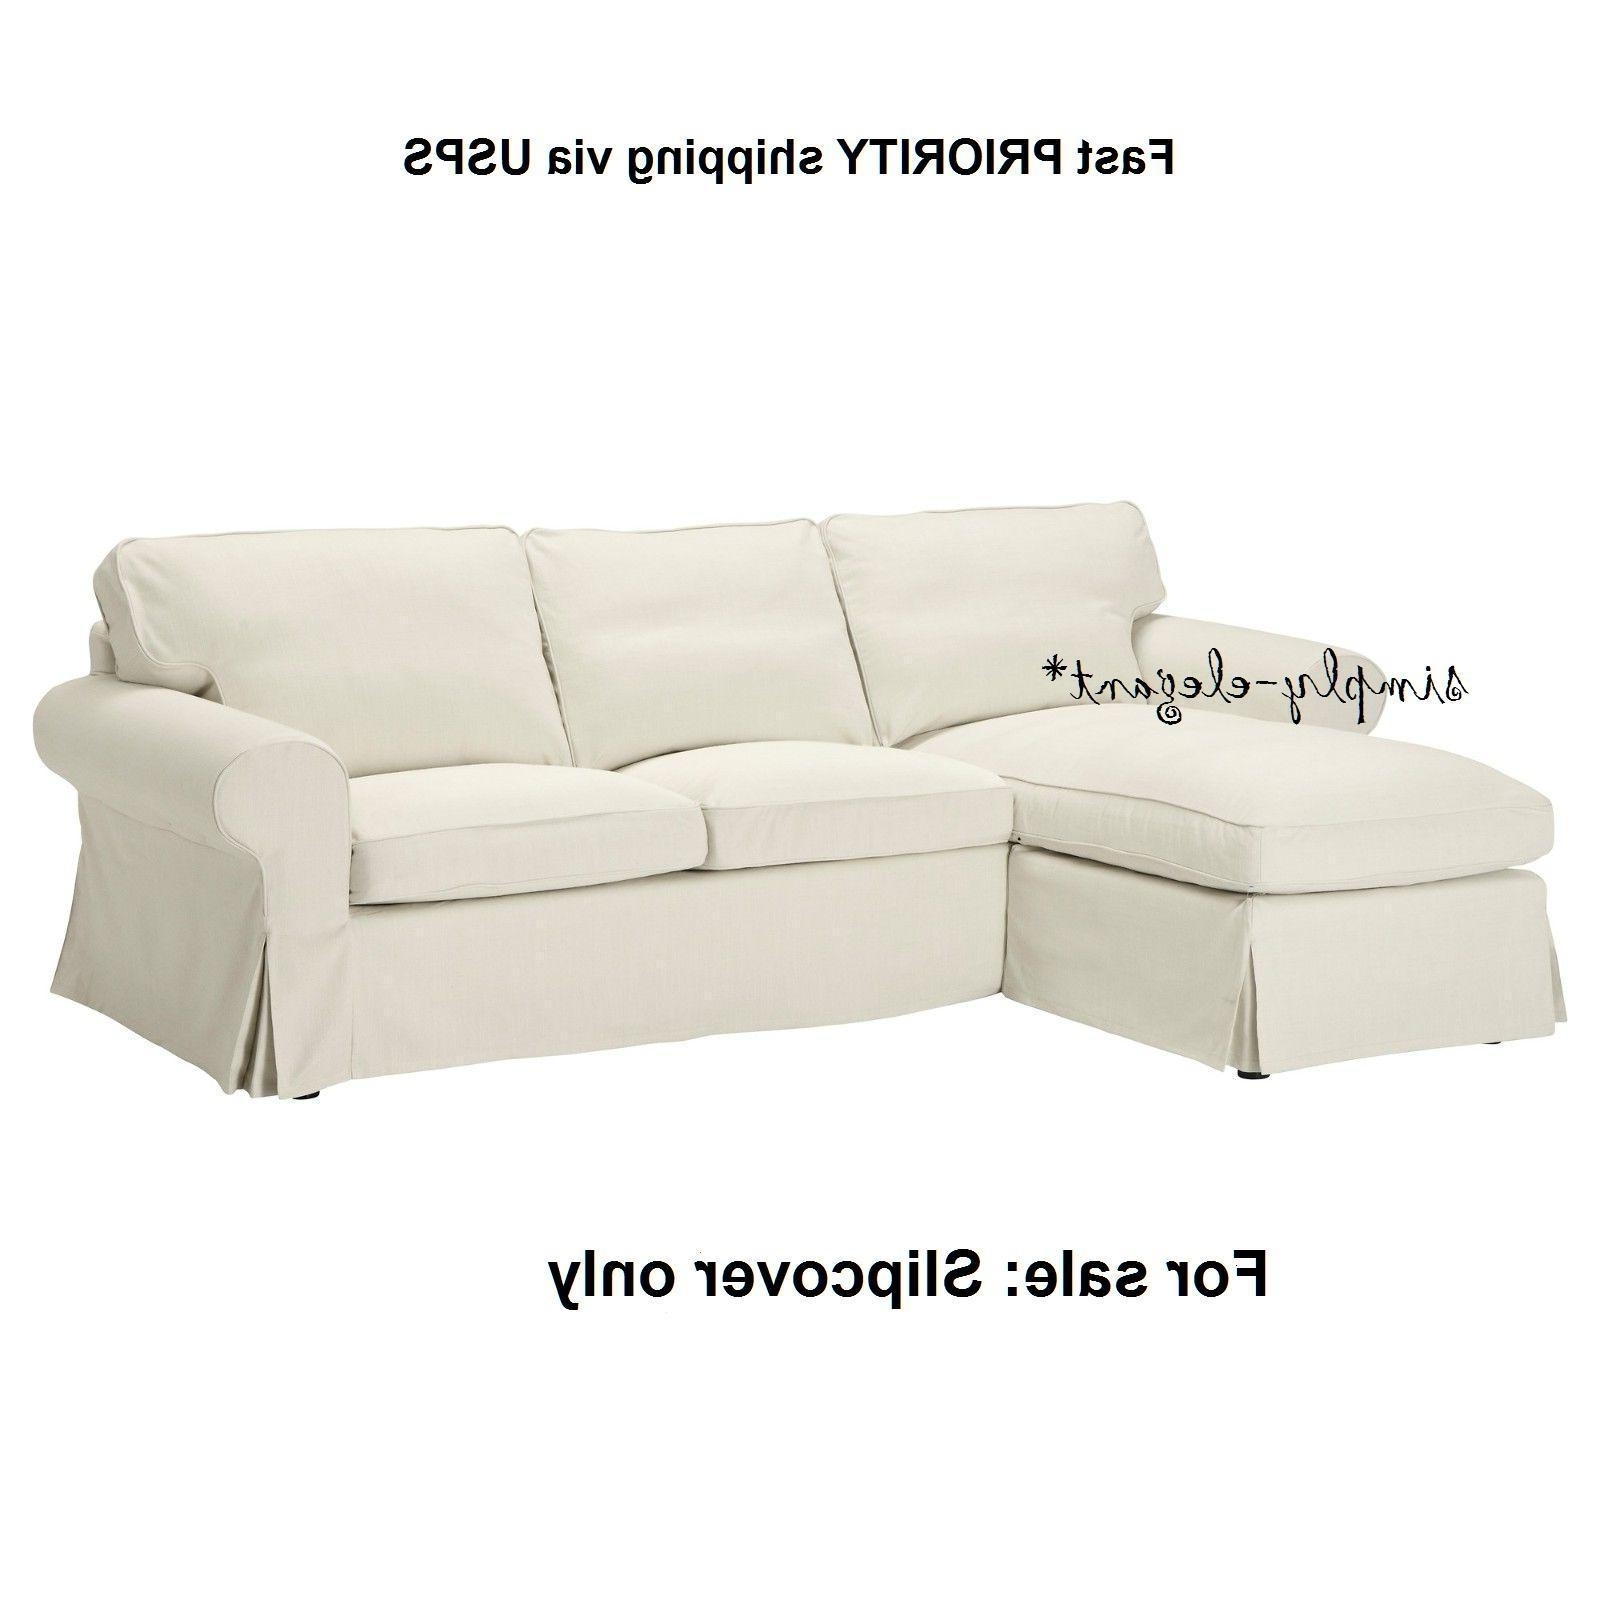 Best And Newest Ektorp Chaises With Ikea Ektorp Cover For Loveseat With Chaise Svanby Beige Sofa (View 3 of 15)